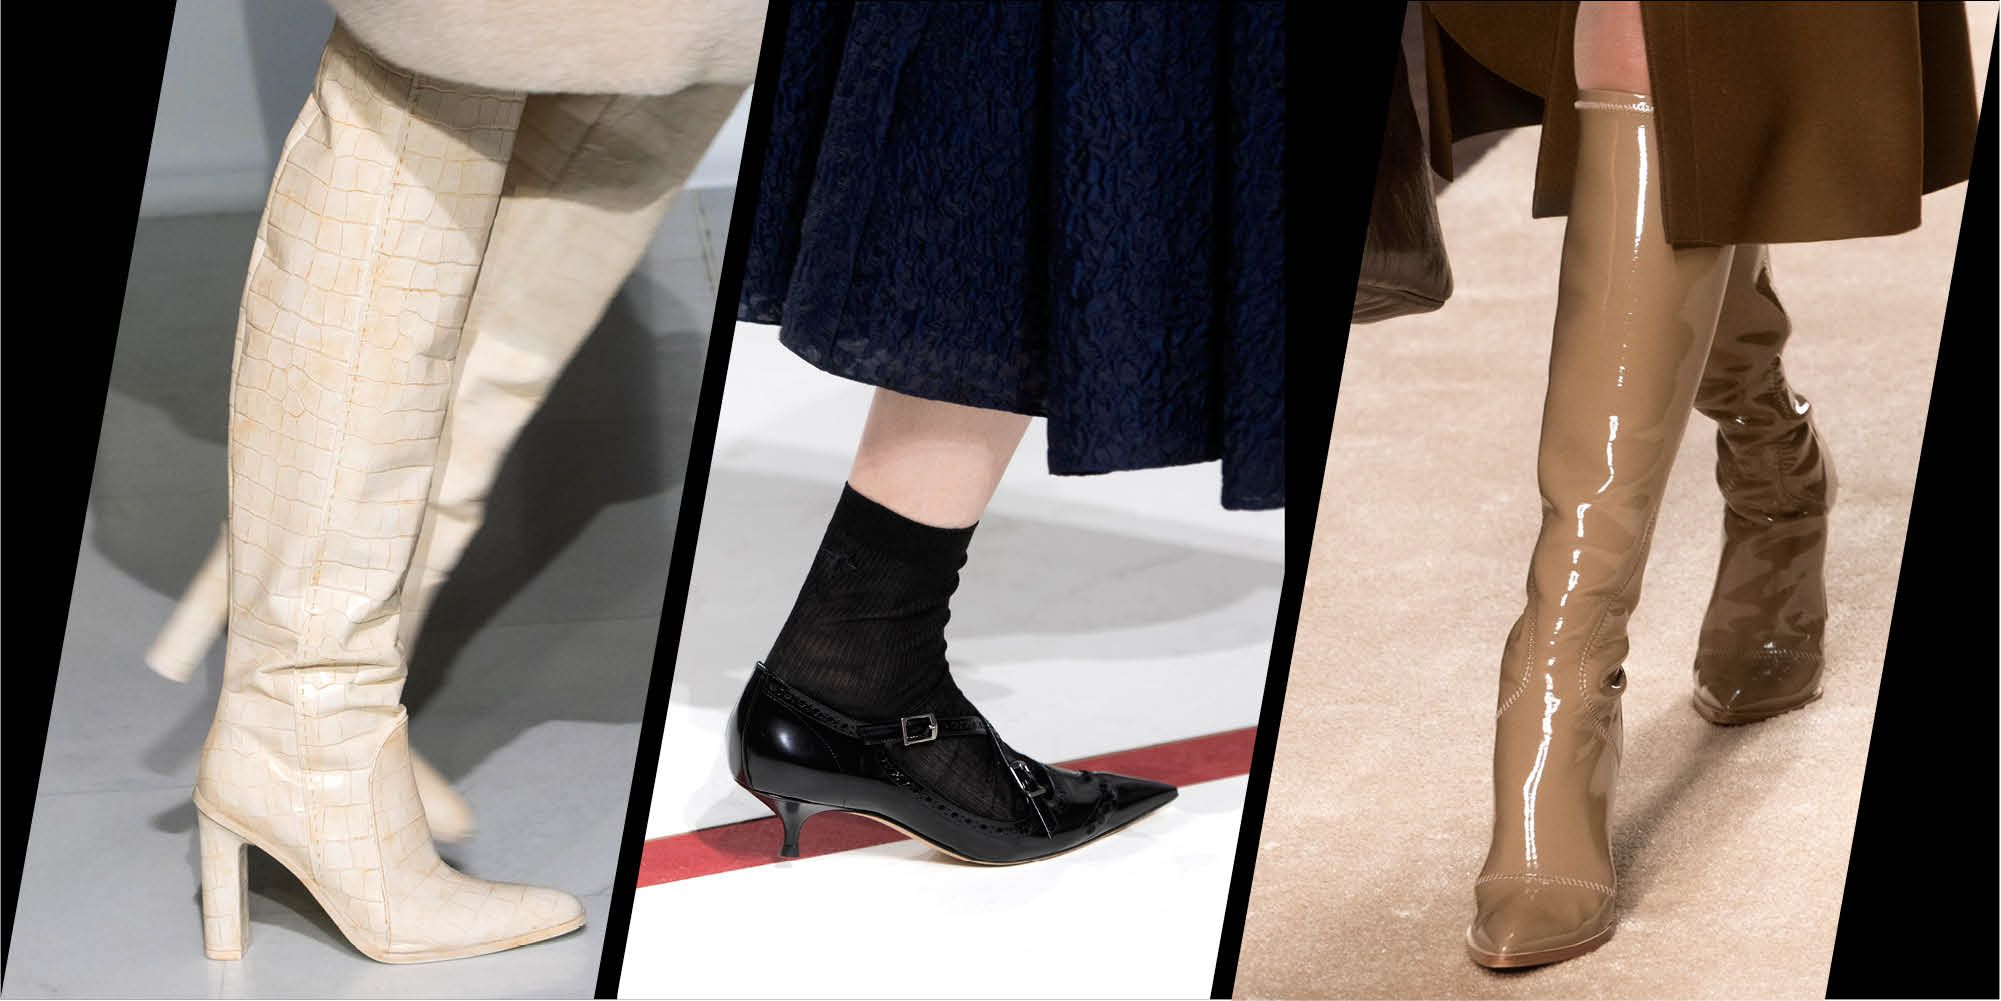 The shoes and boots you'll be wearing this winter